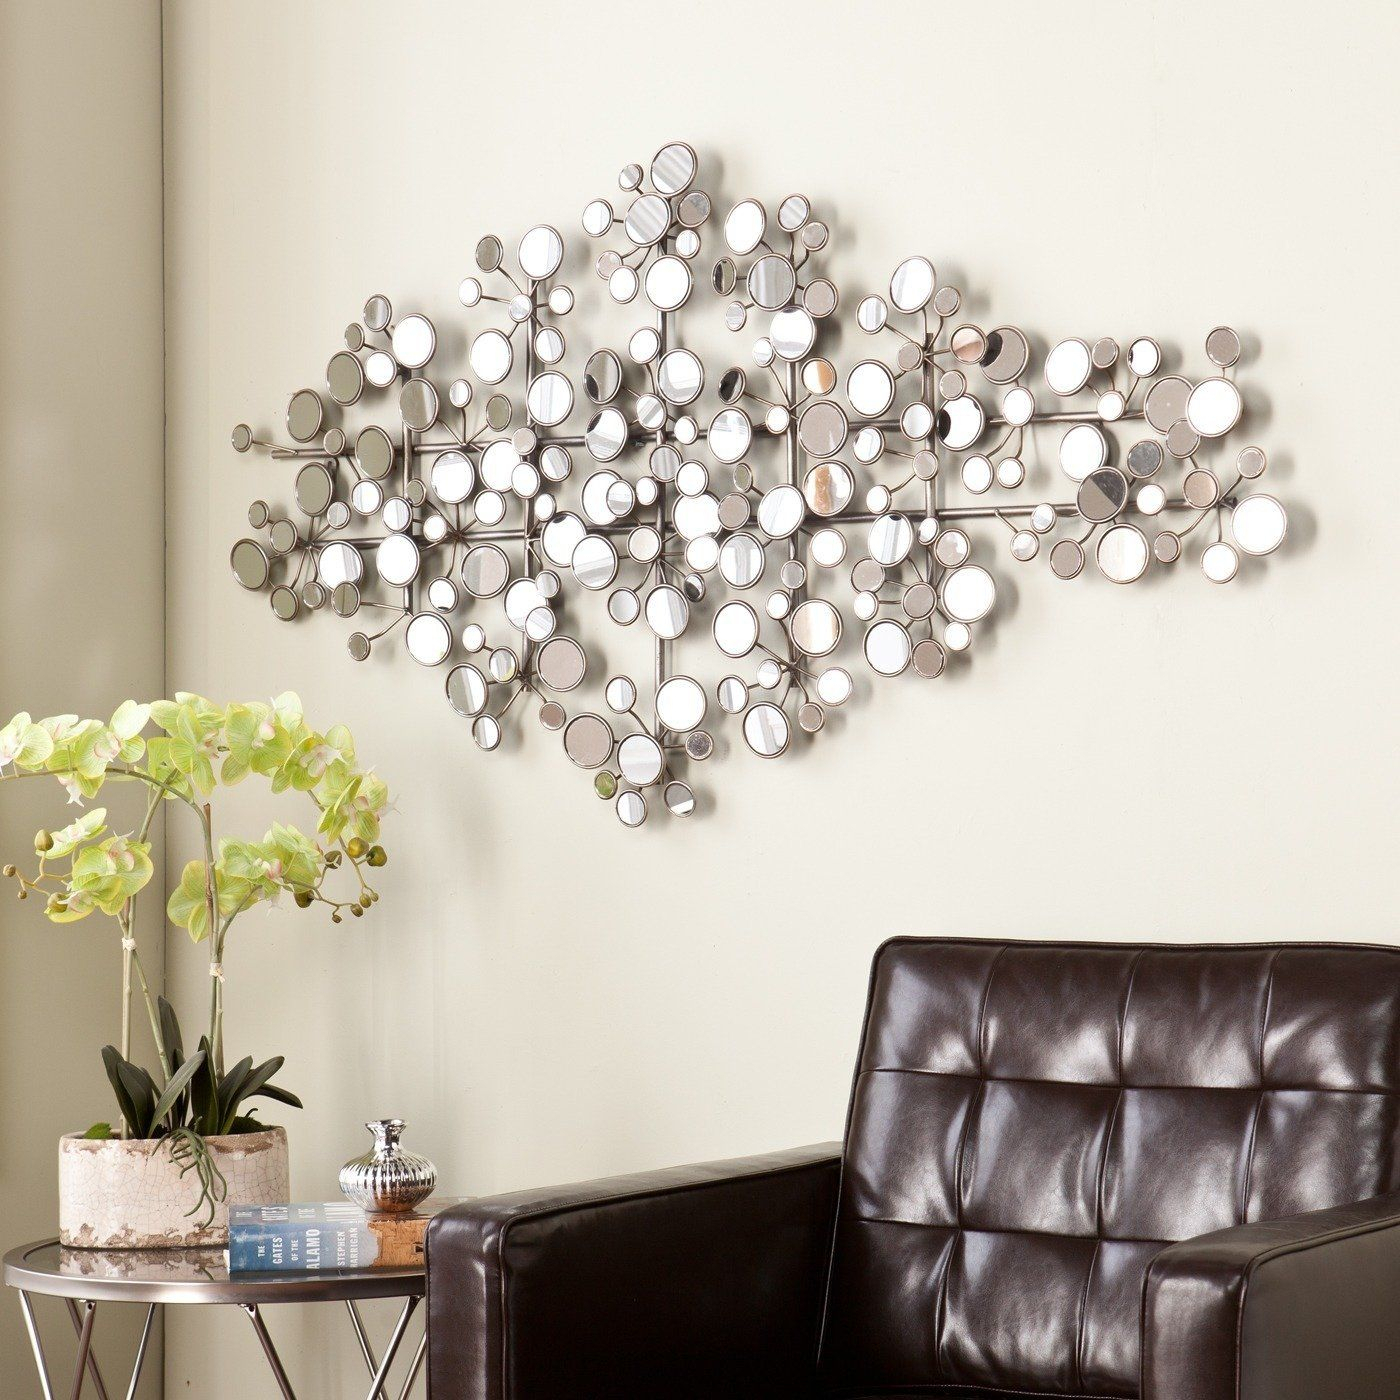 Art That Inspires With Alvis Traditional Metal Wall Decor (View 5 of 20)